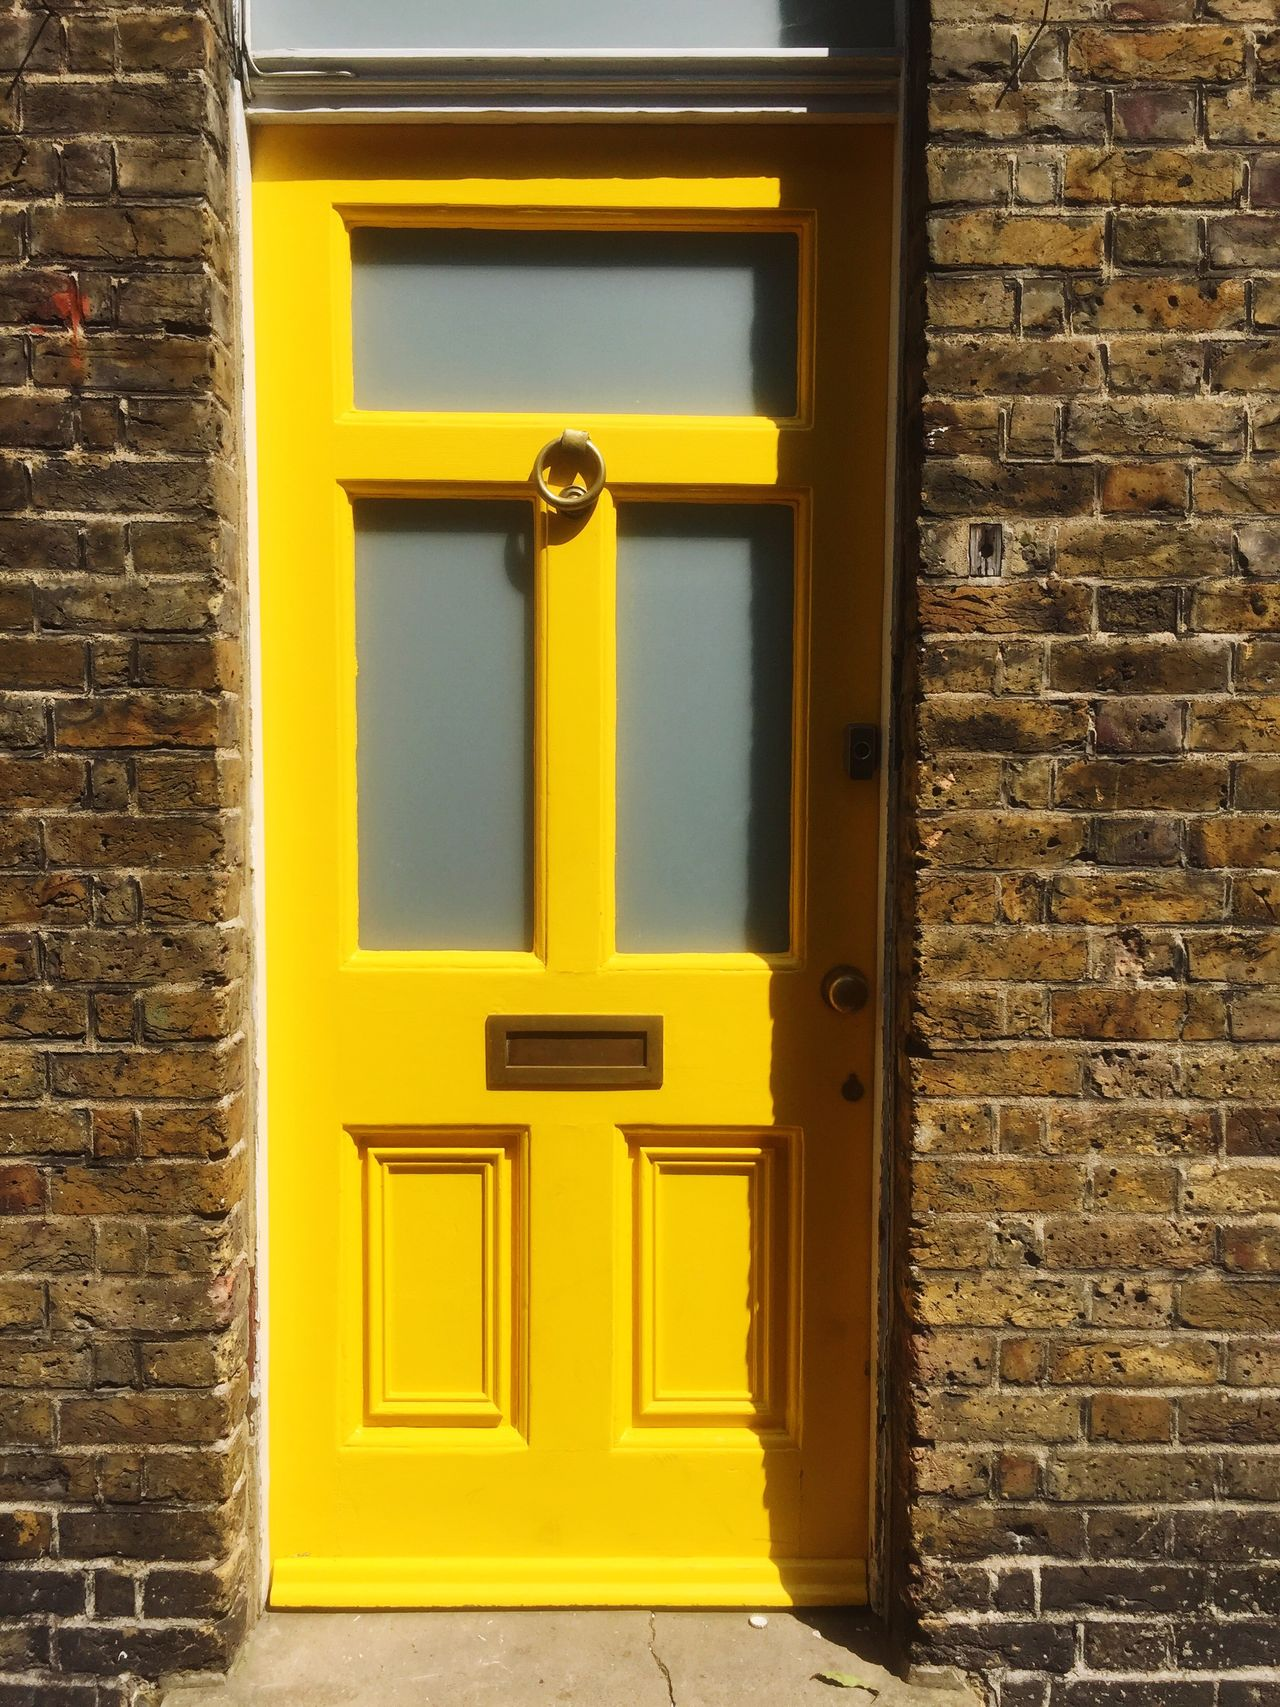 EyeEm Selects EyeEm Selects doors of East London Yellow Door Outdoors Day No People Architecture Built Structure Brick Wall Building Exterior Close-up